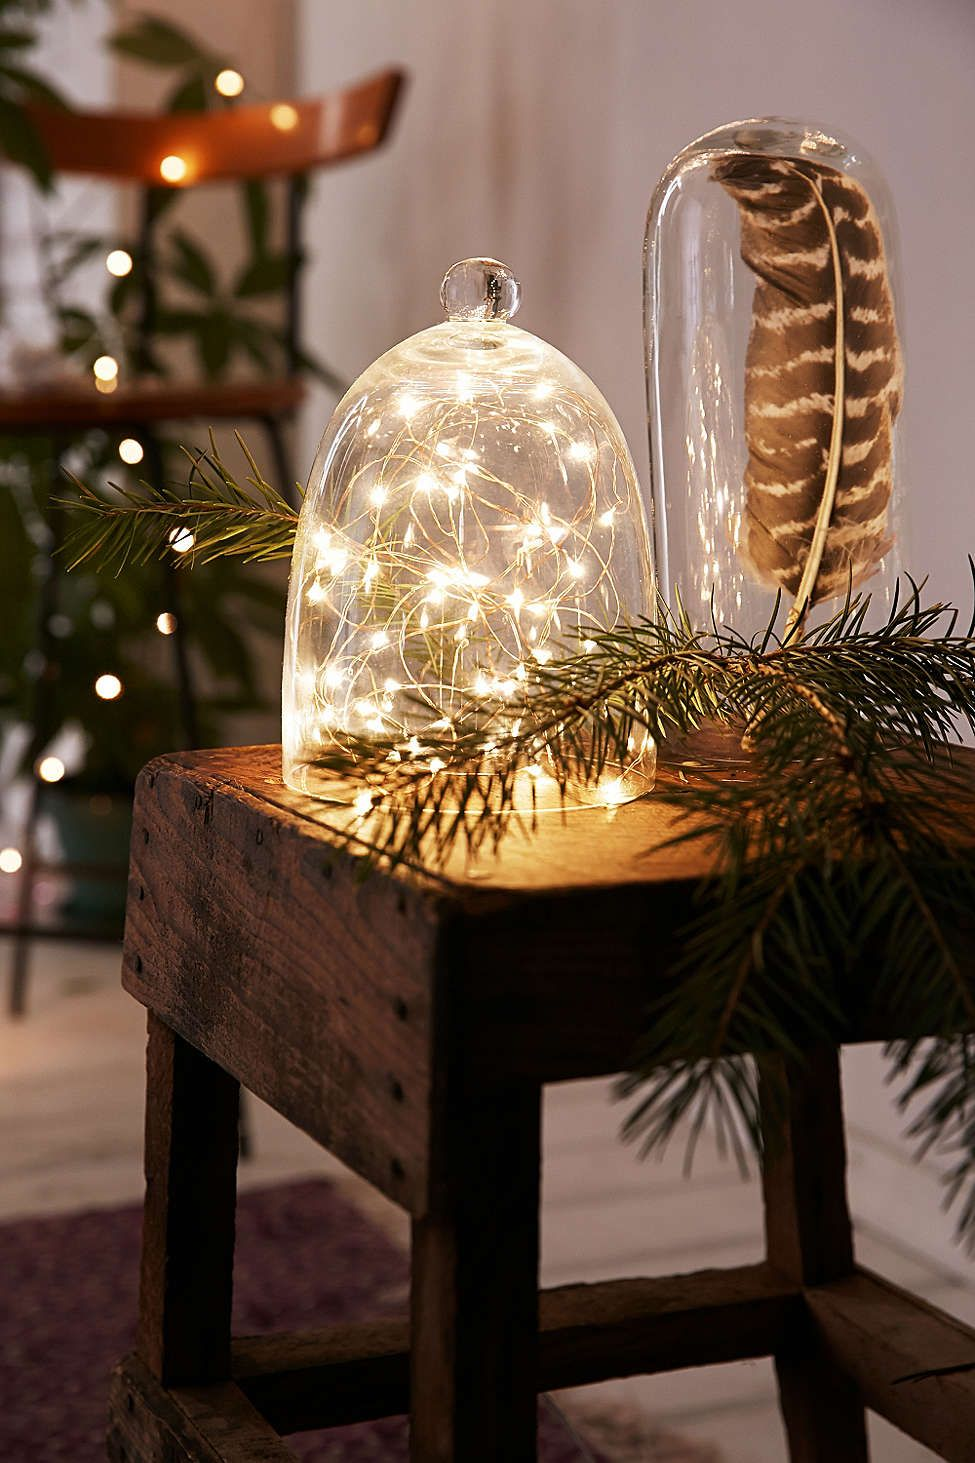 28 Breathtaking Ways to Decorate With Christmas Tree Lights ...